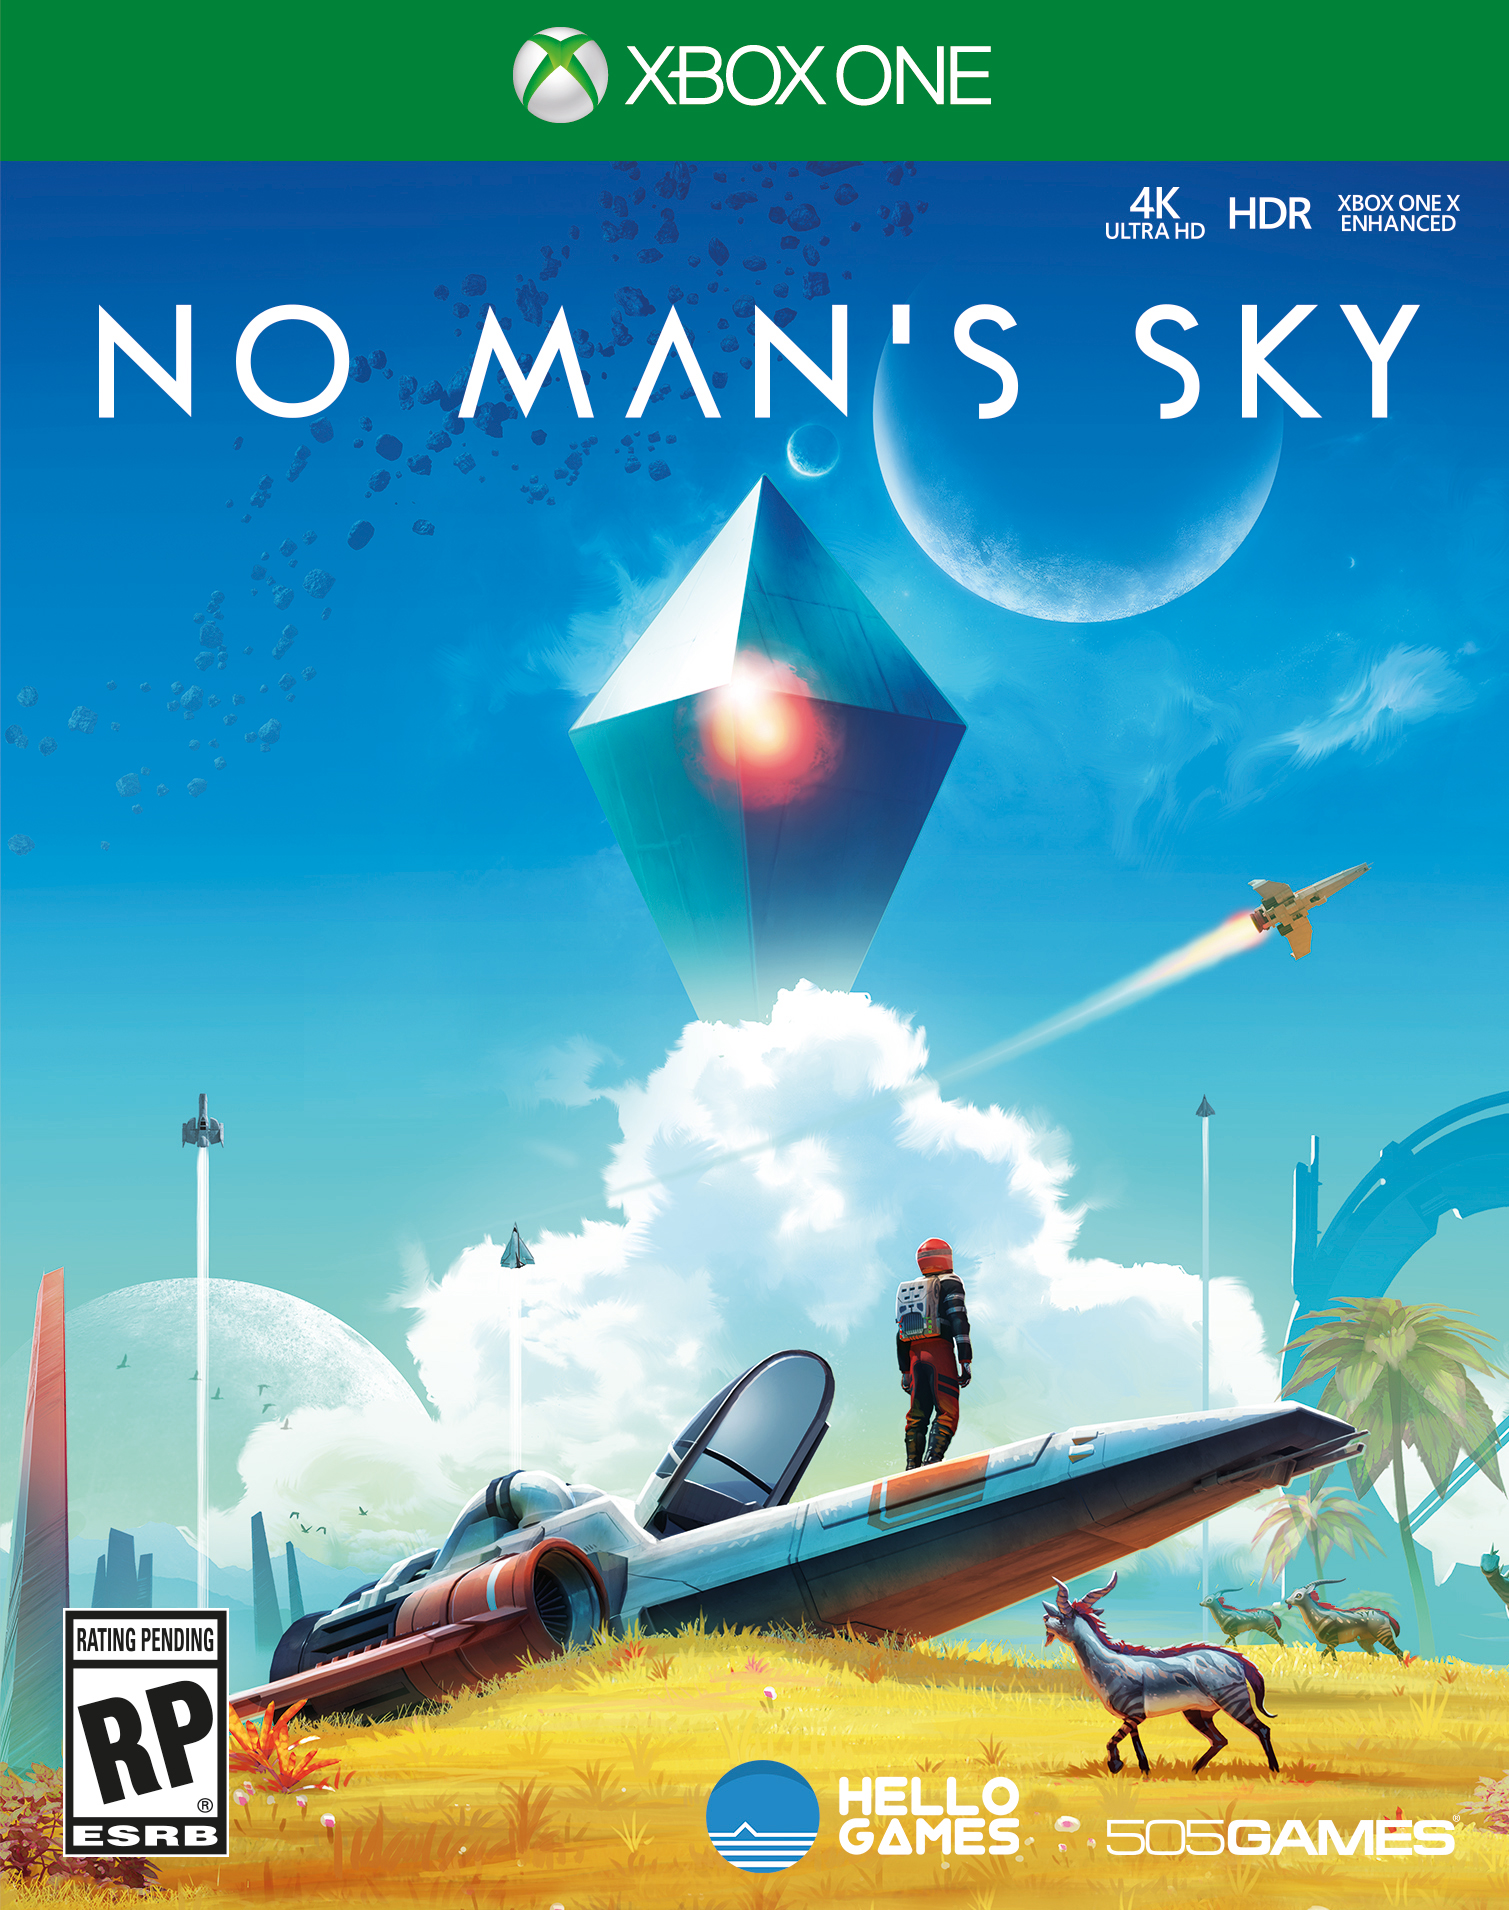 no man 39 s sky is coming to xbox one gets gorgeous boxart and new update details. Black Bedroom Furniture Sets. Home Design Ideas